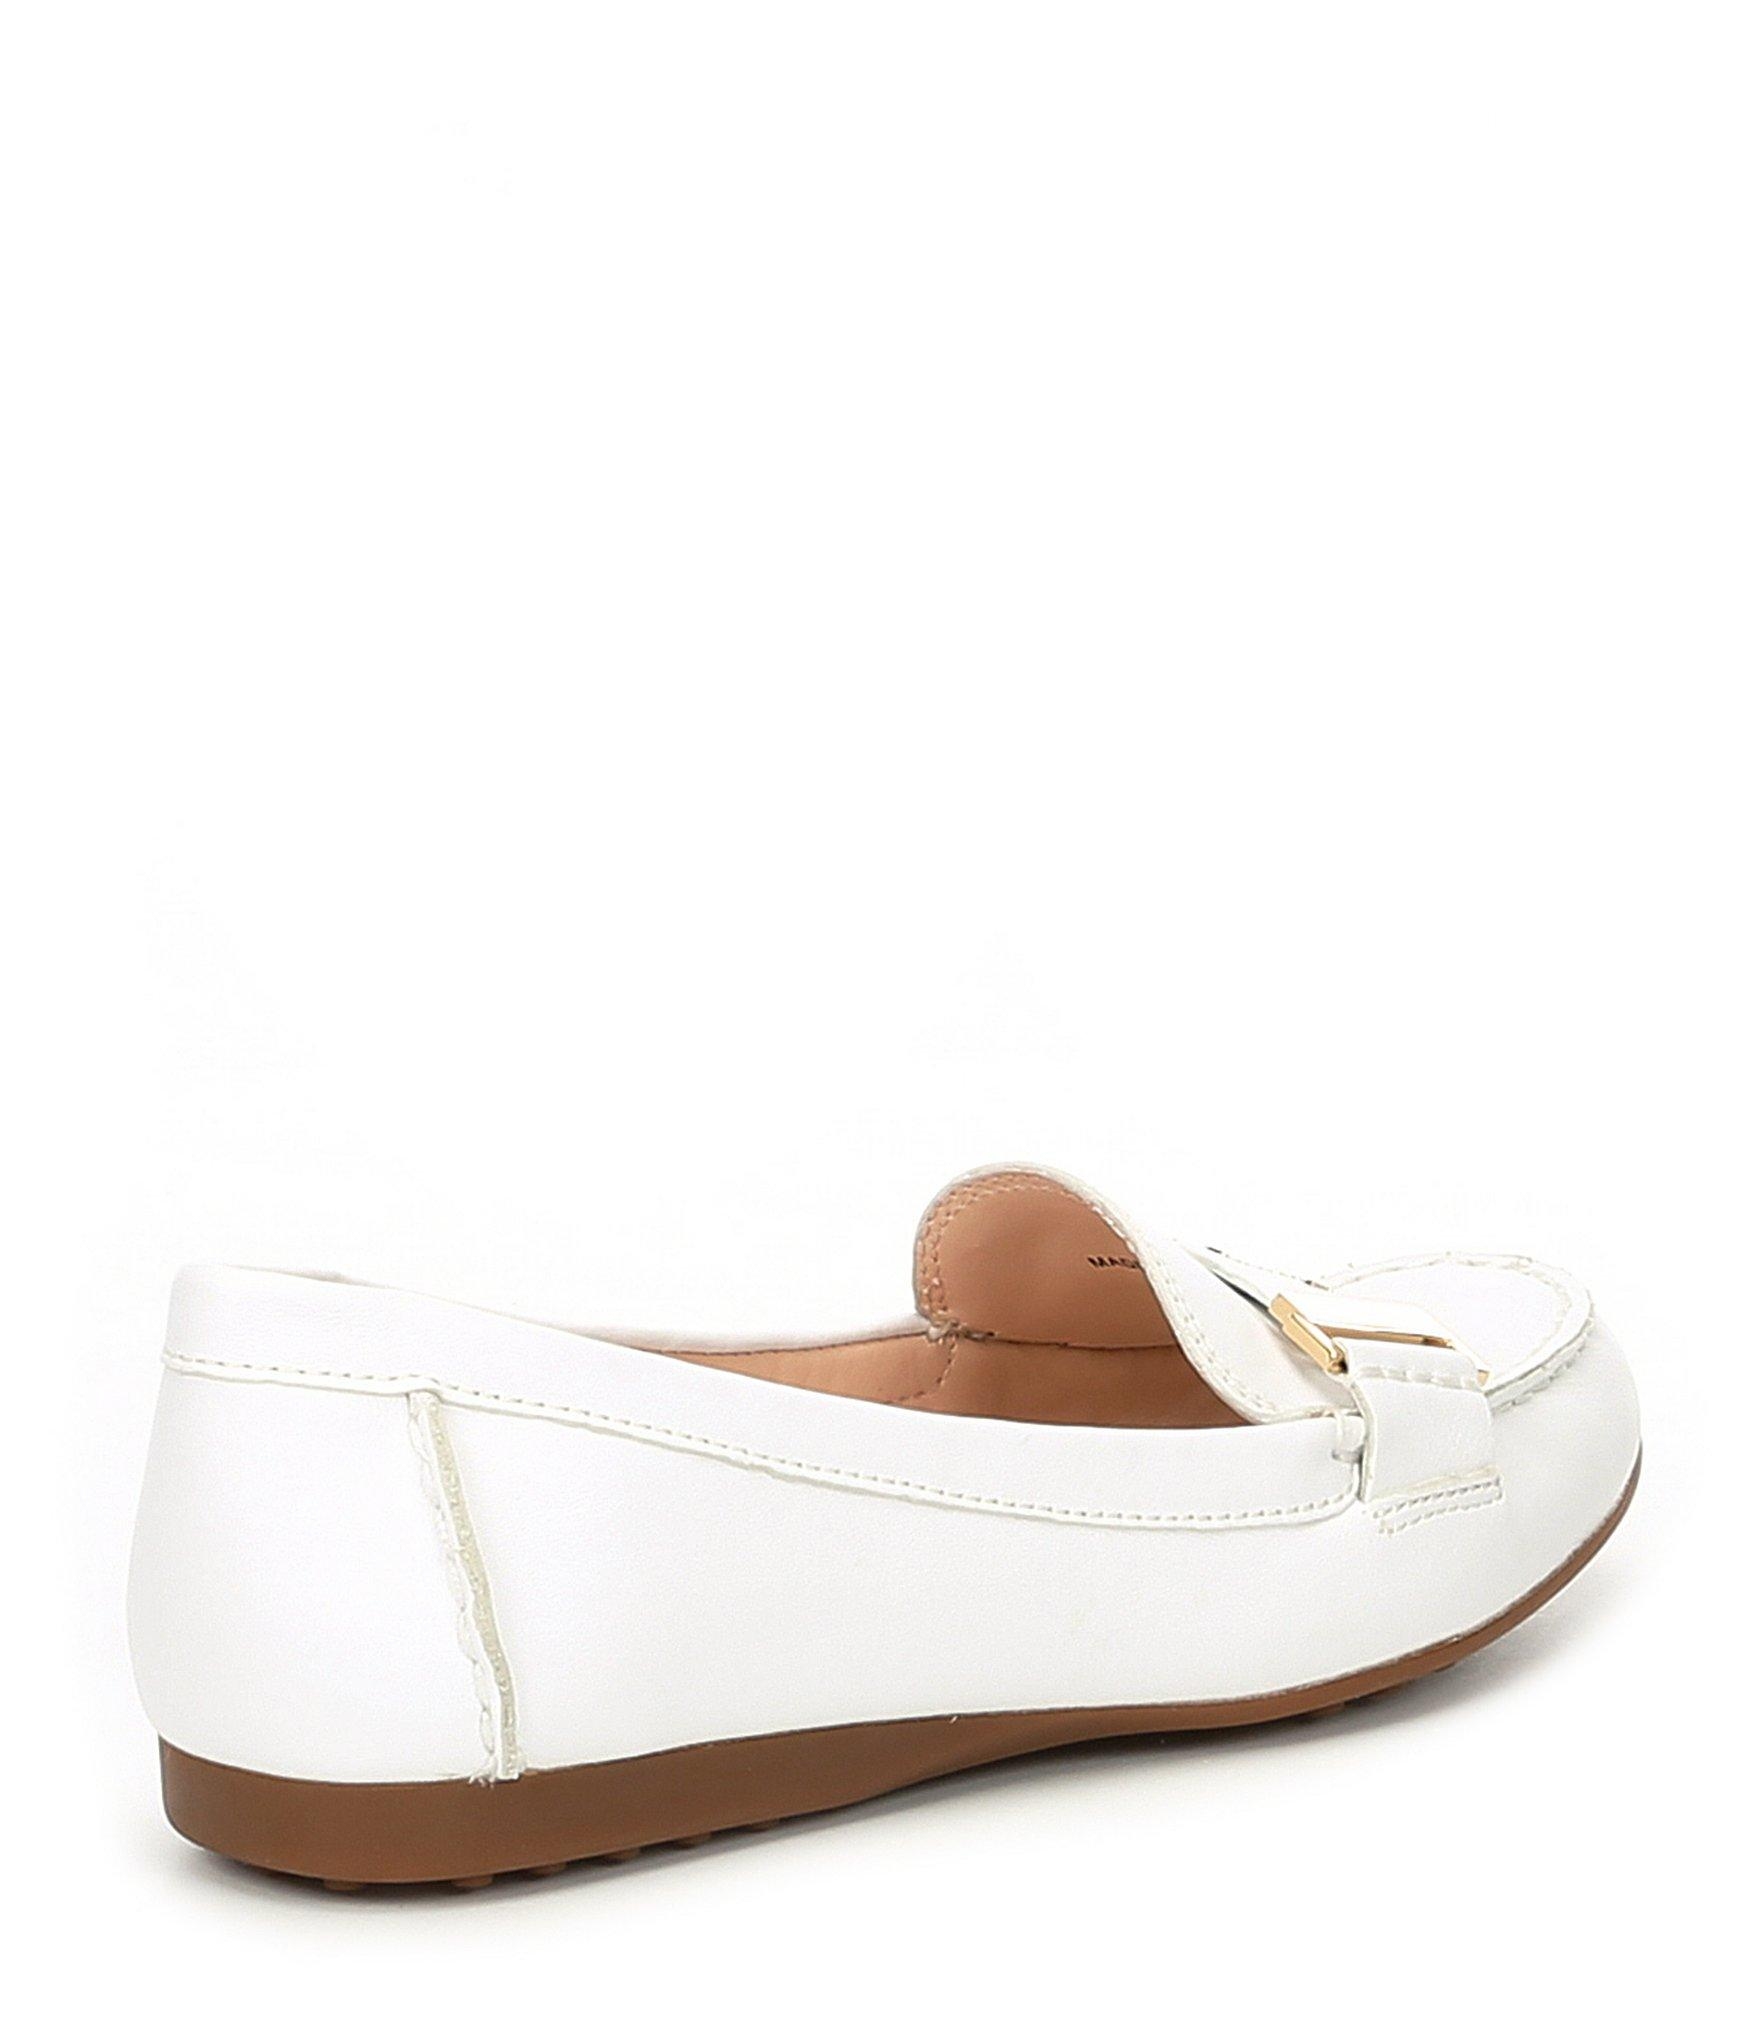 f919b74257a7 Kate Spade - White Colette Leather Logo Loafers - Lyst. View fullscreen